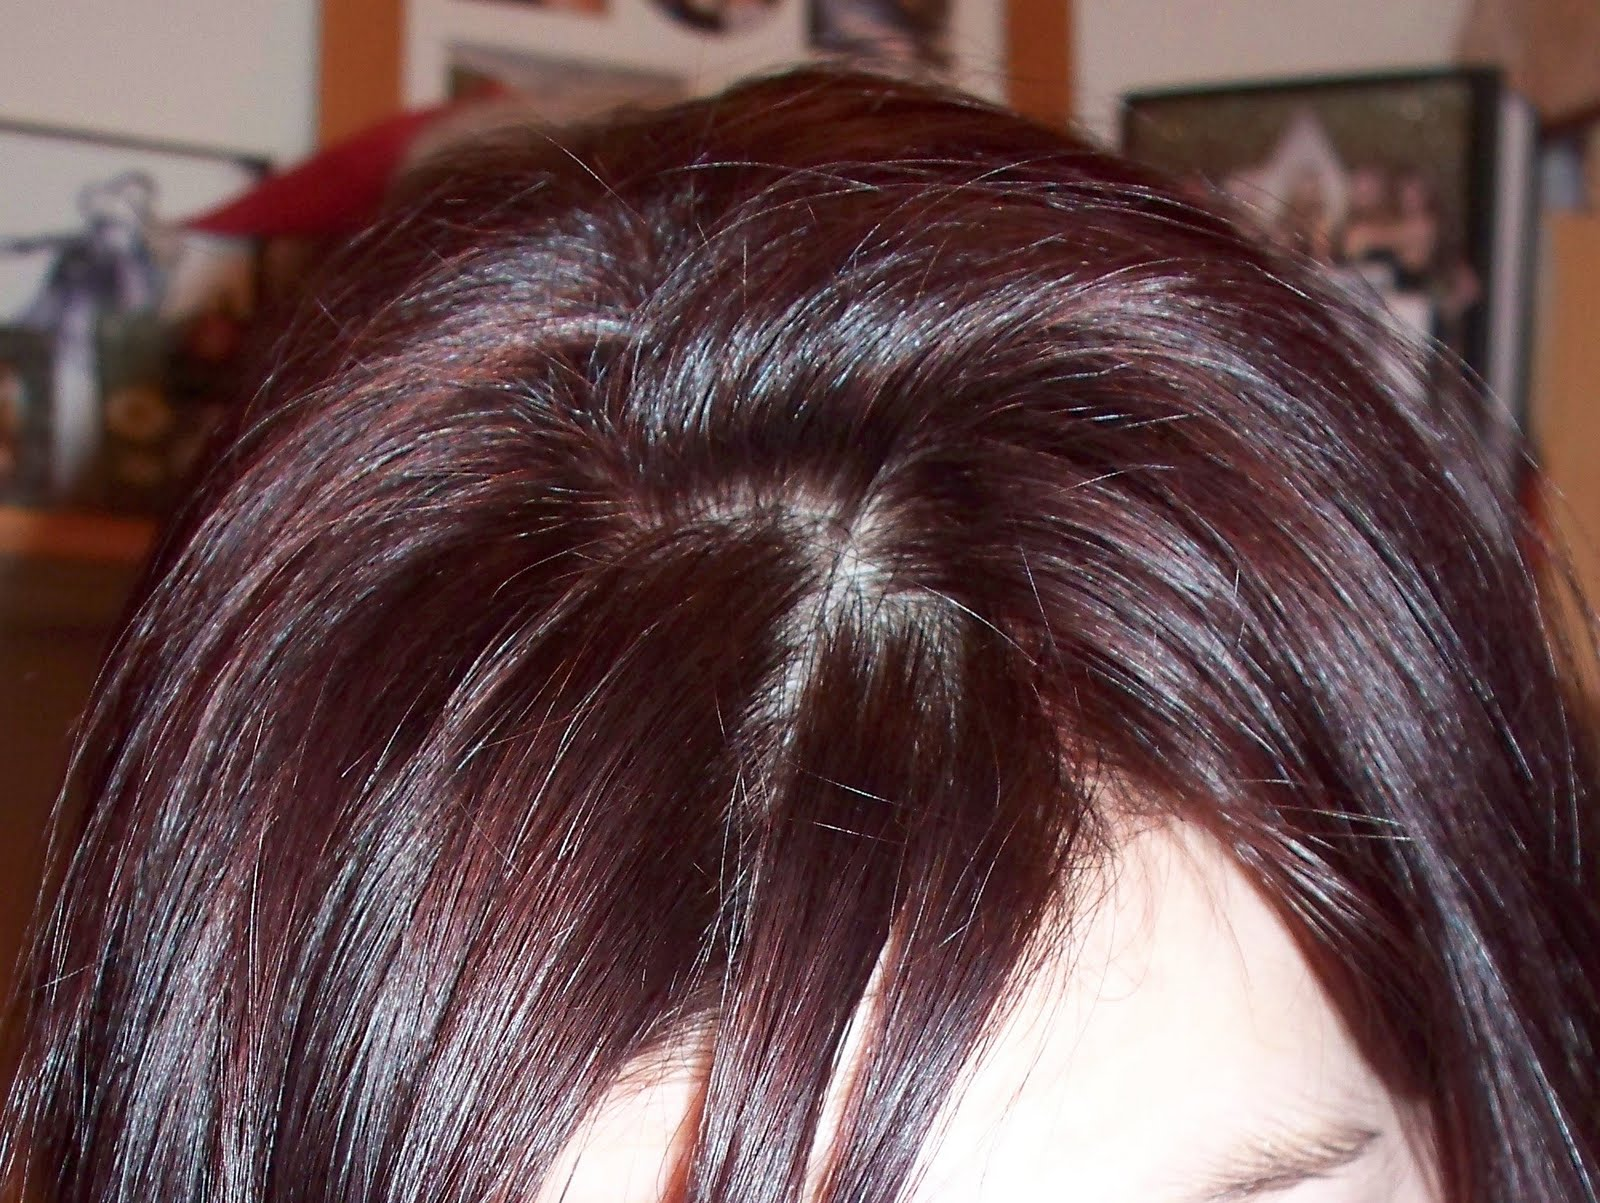 Dark Cherry Coke Hair Color My hair is shiny,